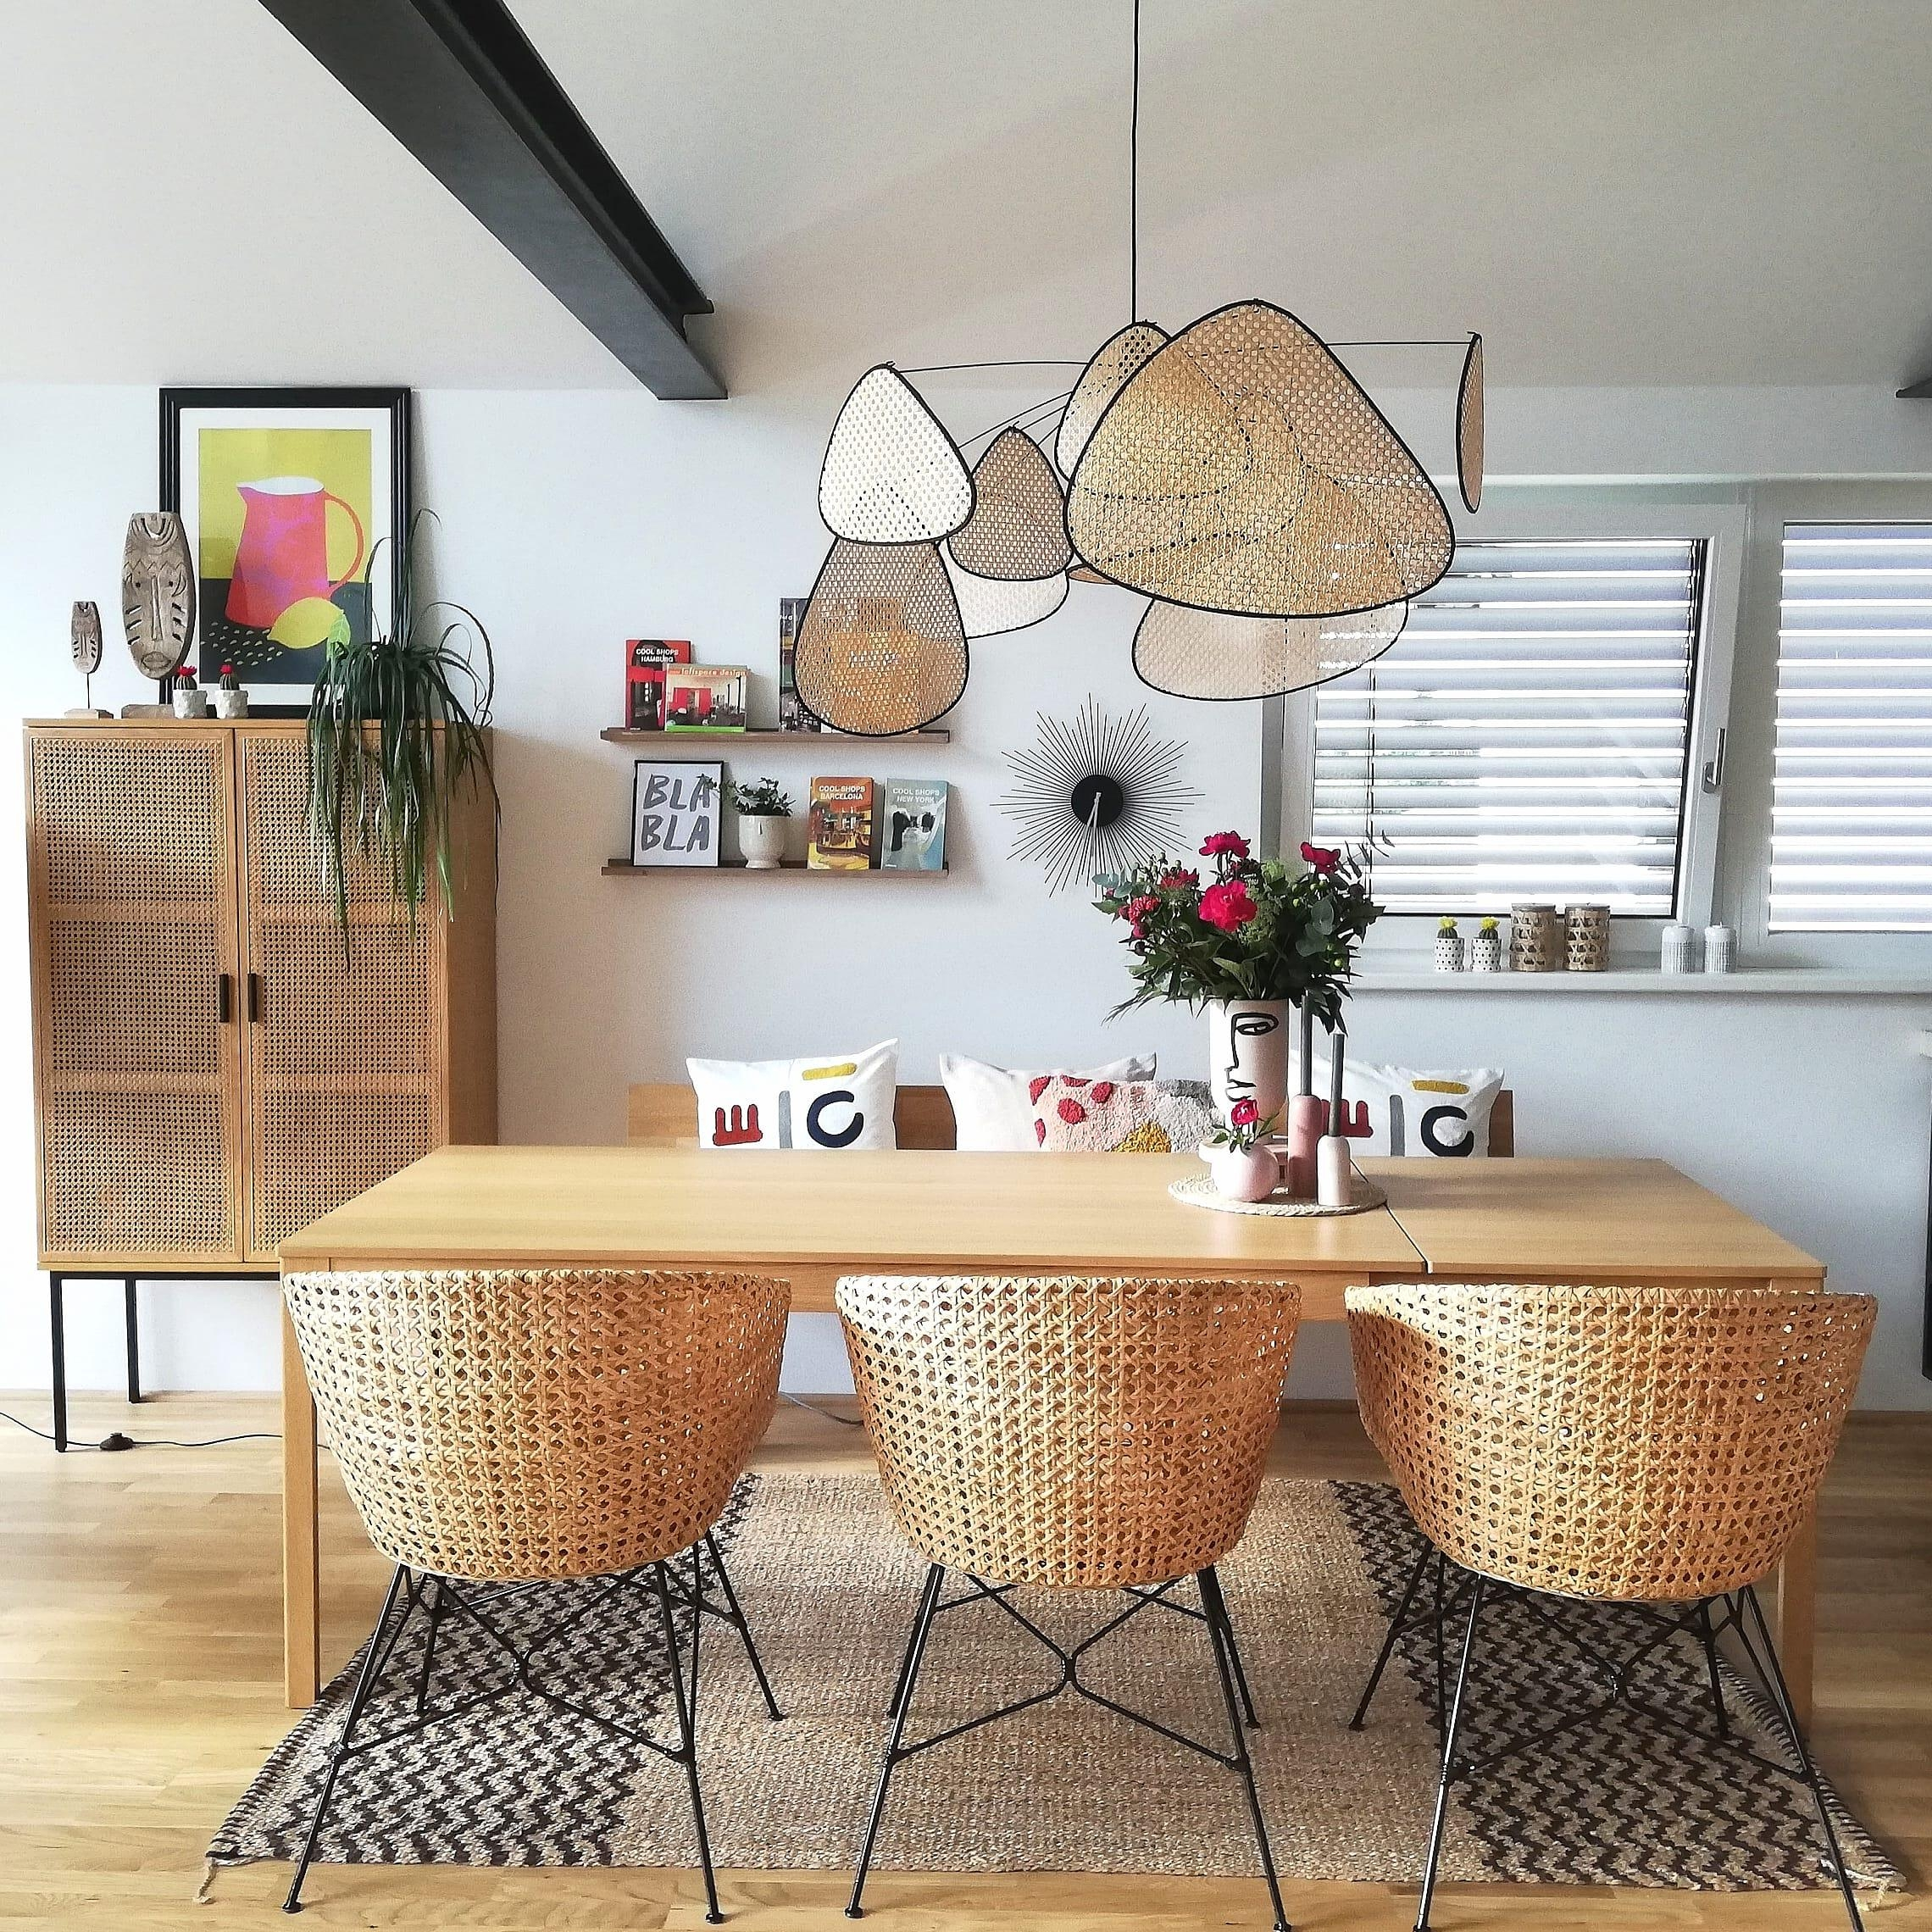 #marketsetofficiel #rattan #wienergeflecht #industrial #modernliving #home #decor #decoration #loft